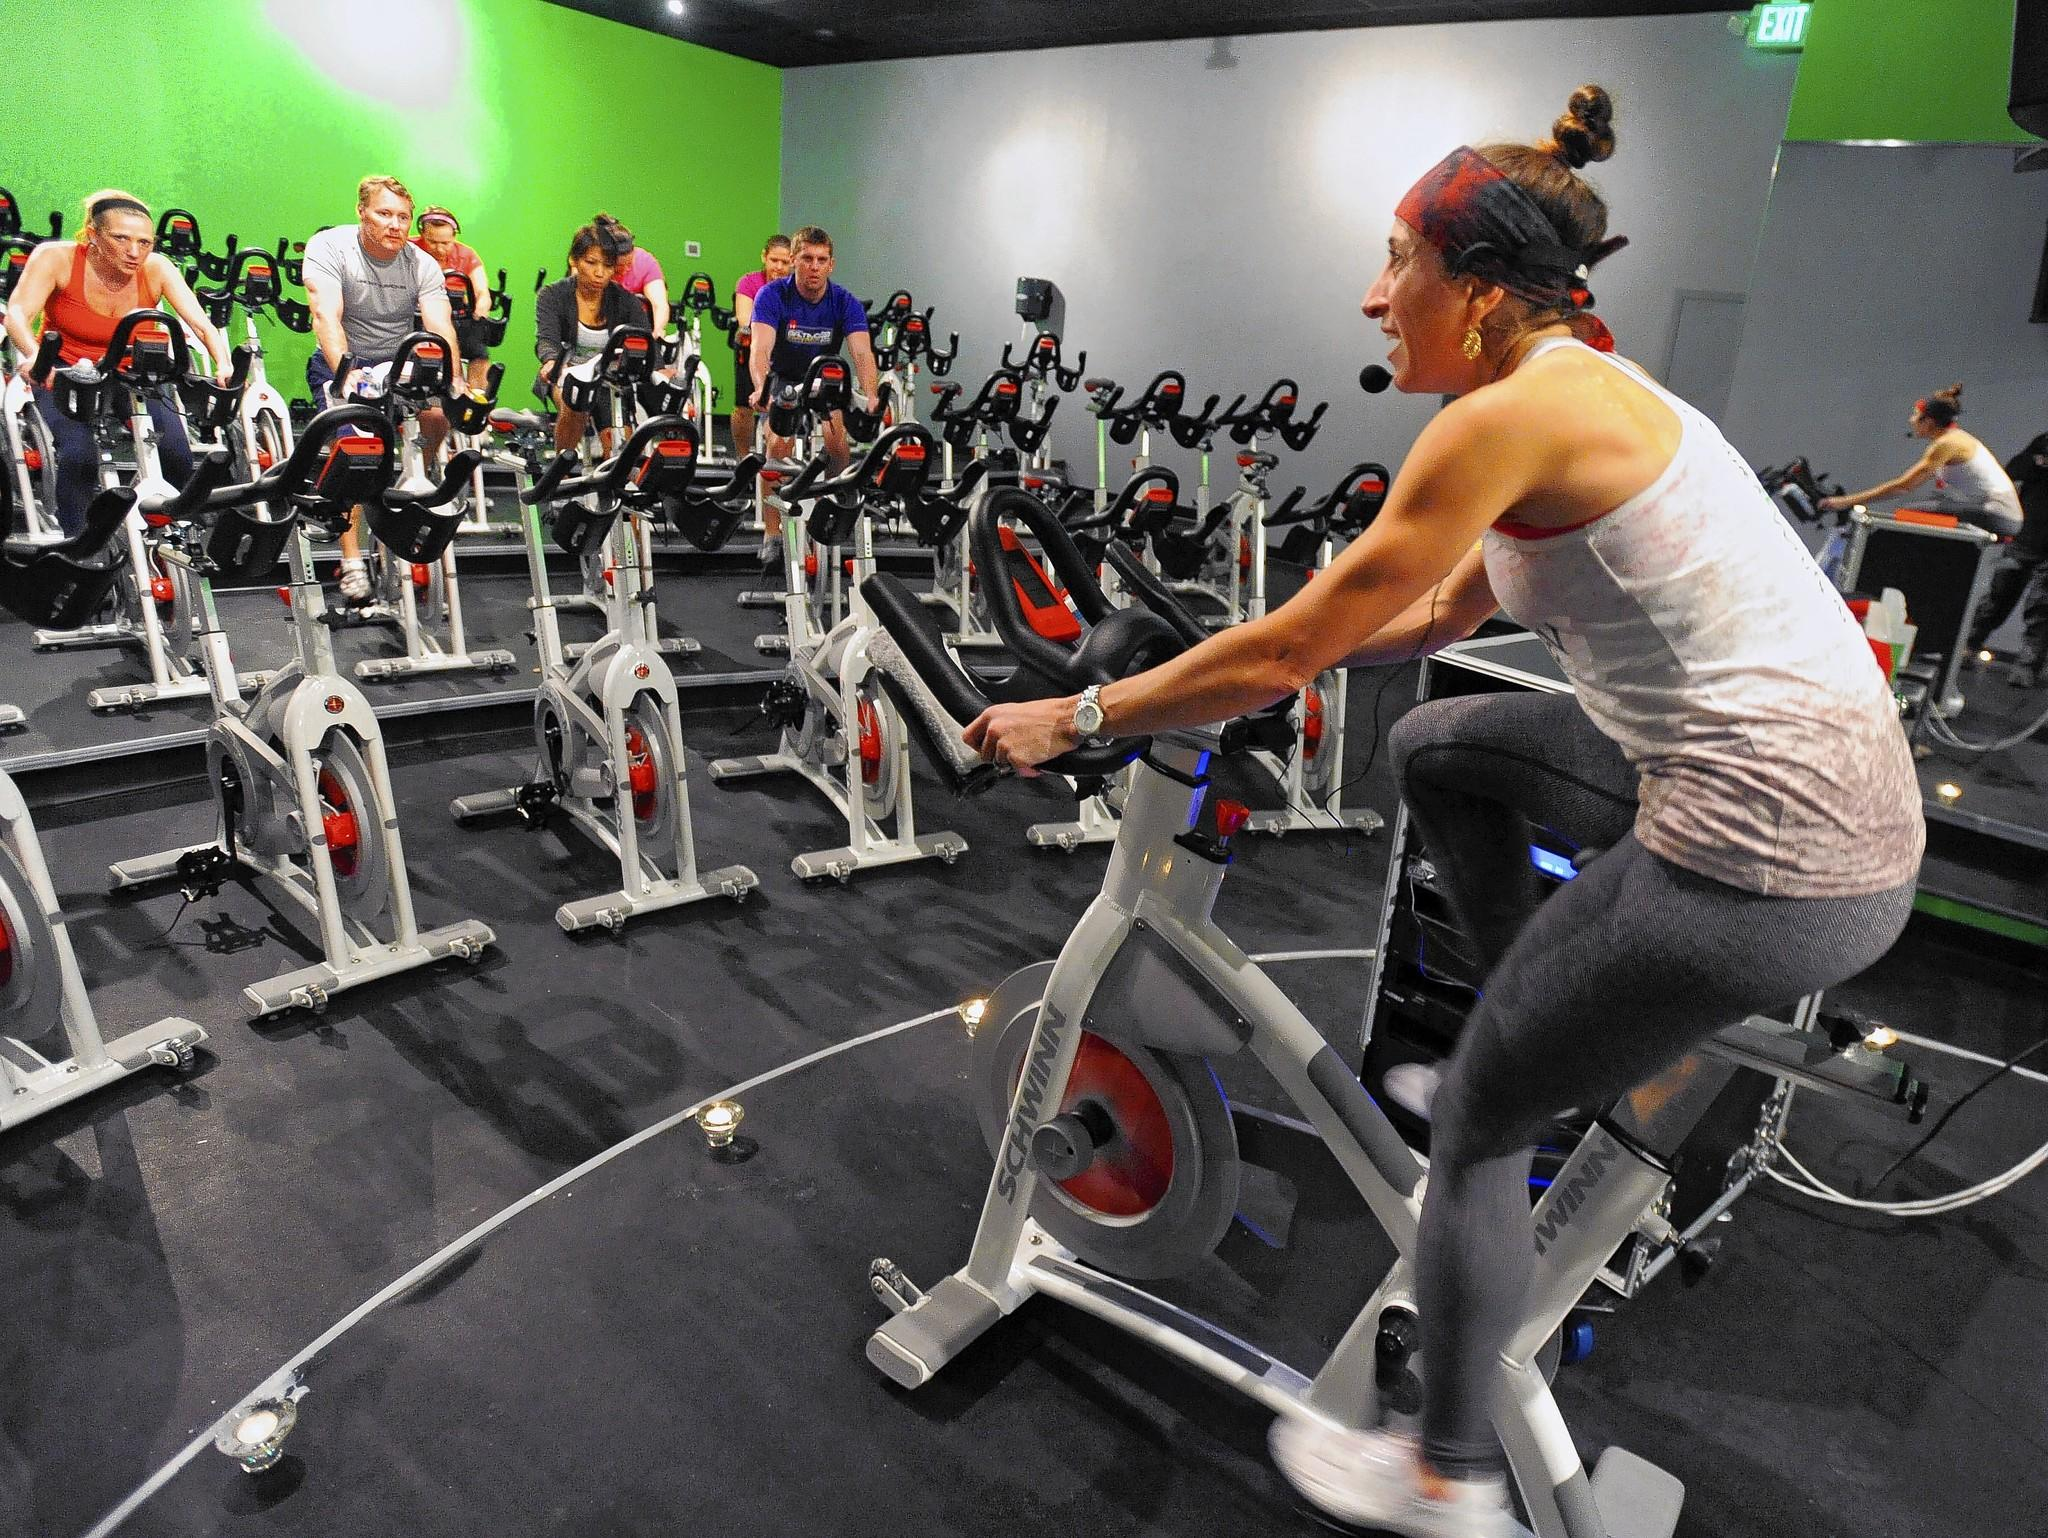 Esther Collinetti, right, of REV Cycle Studio, leads the REV60 Zen class, which combines spinning with yoga.